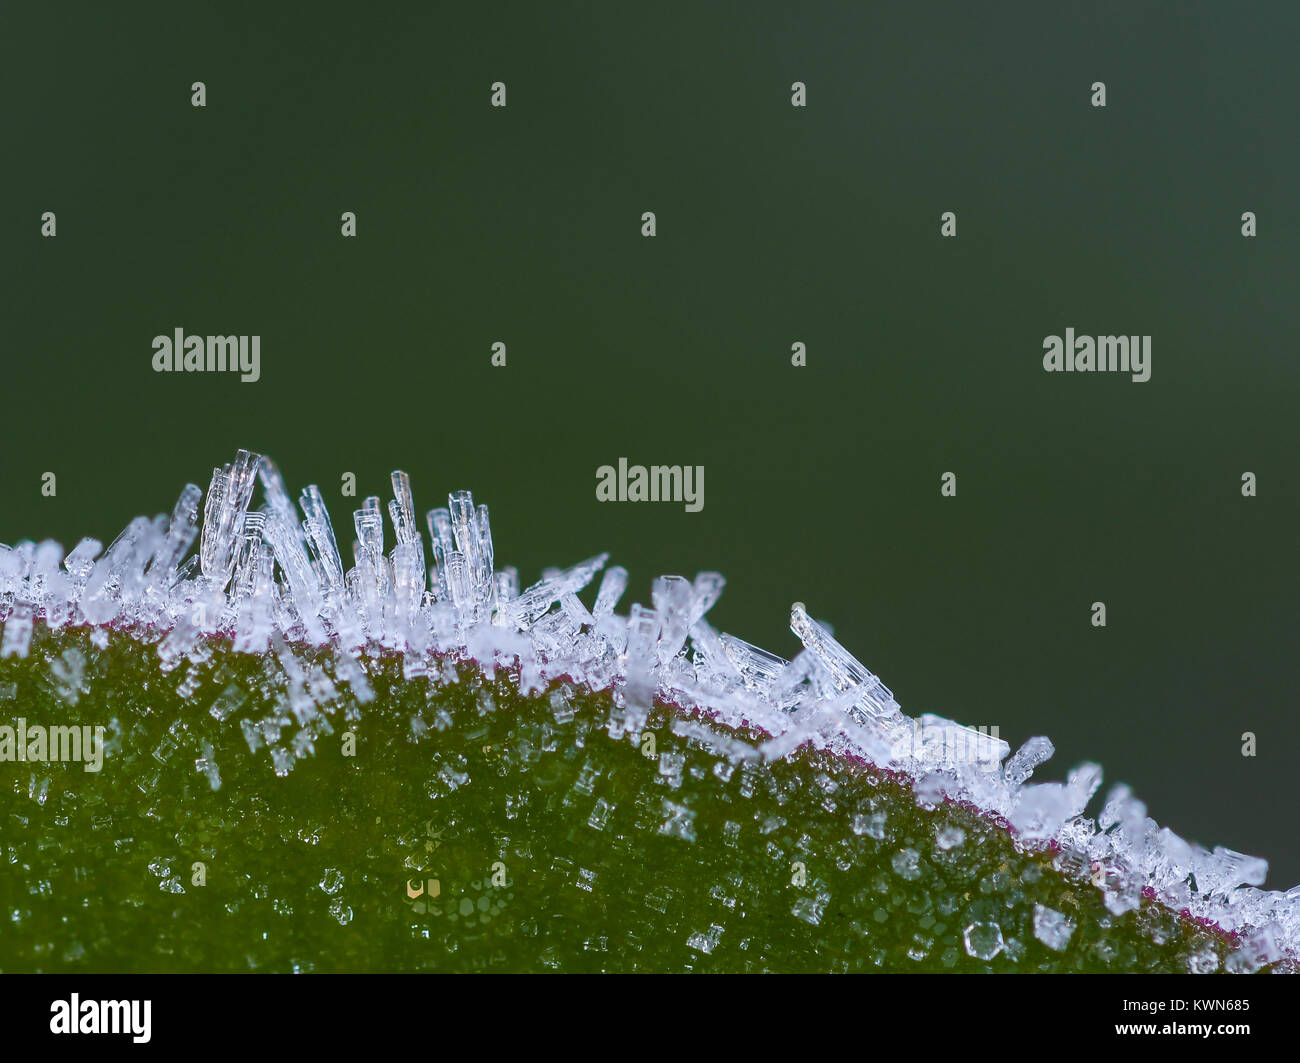 Ice crystals on the edge of a leaf - Stock Image